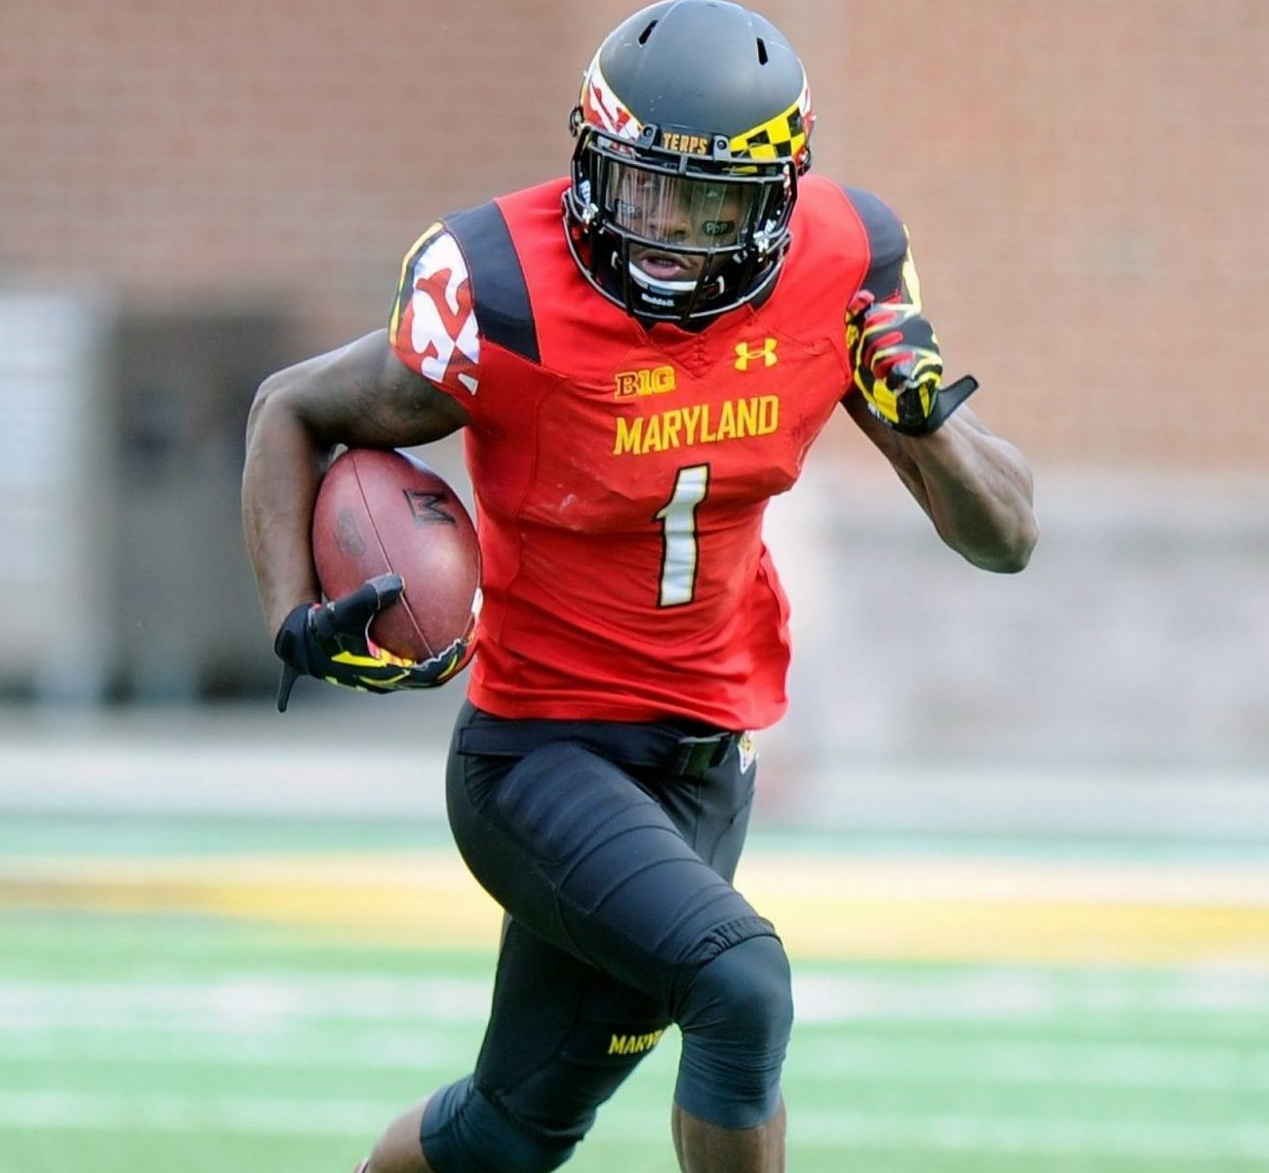 Stefon Diggs COllege